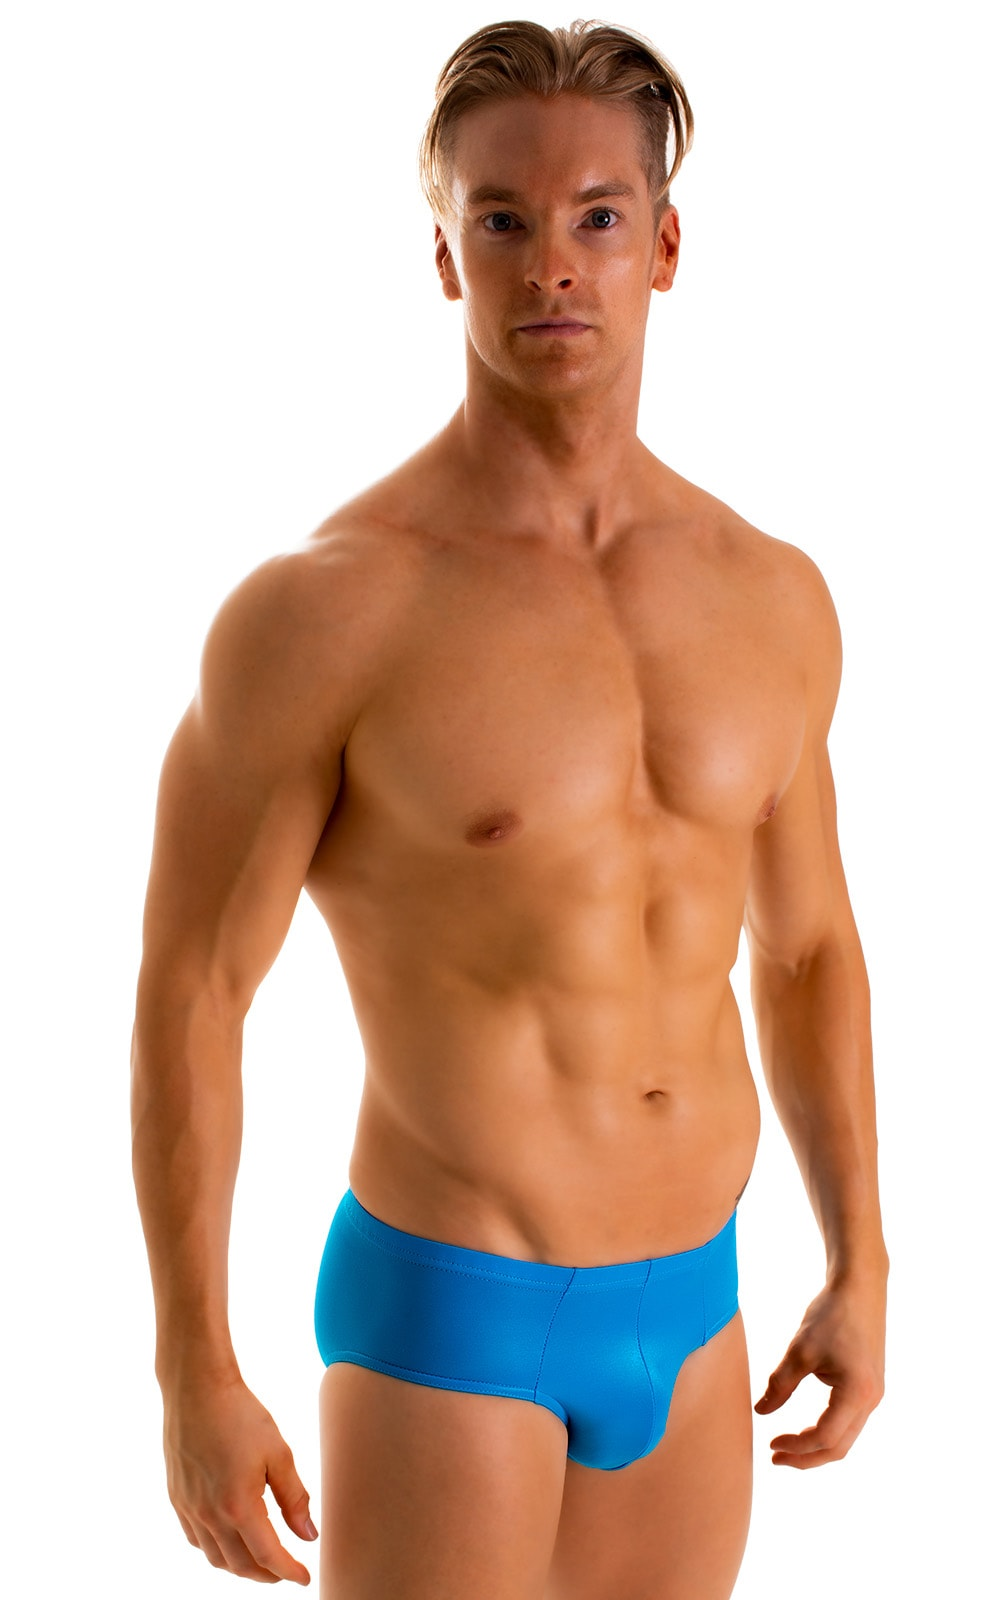 Pouch Brief Swimsuit in Wet Look Turquoise 1